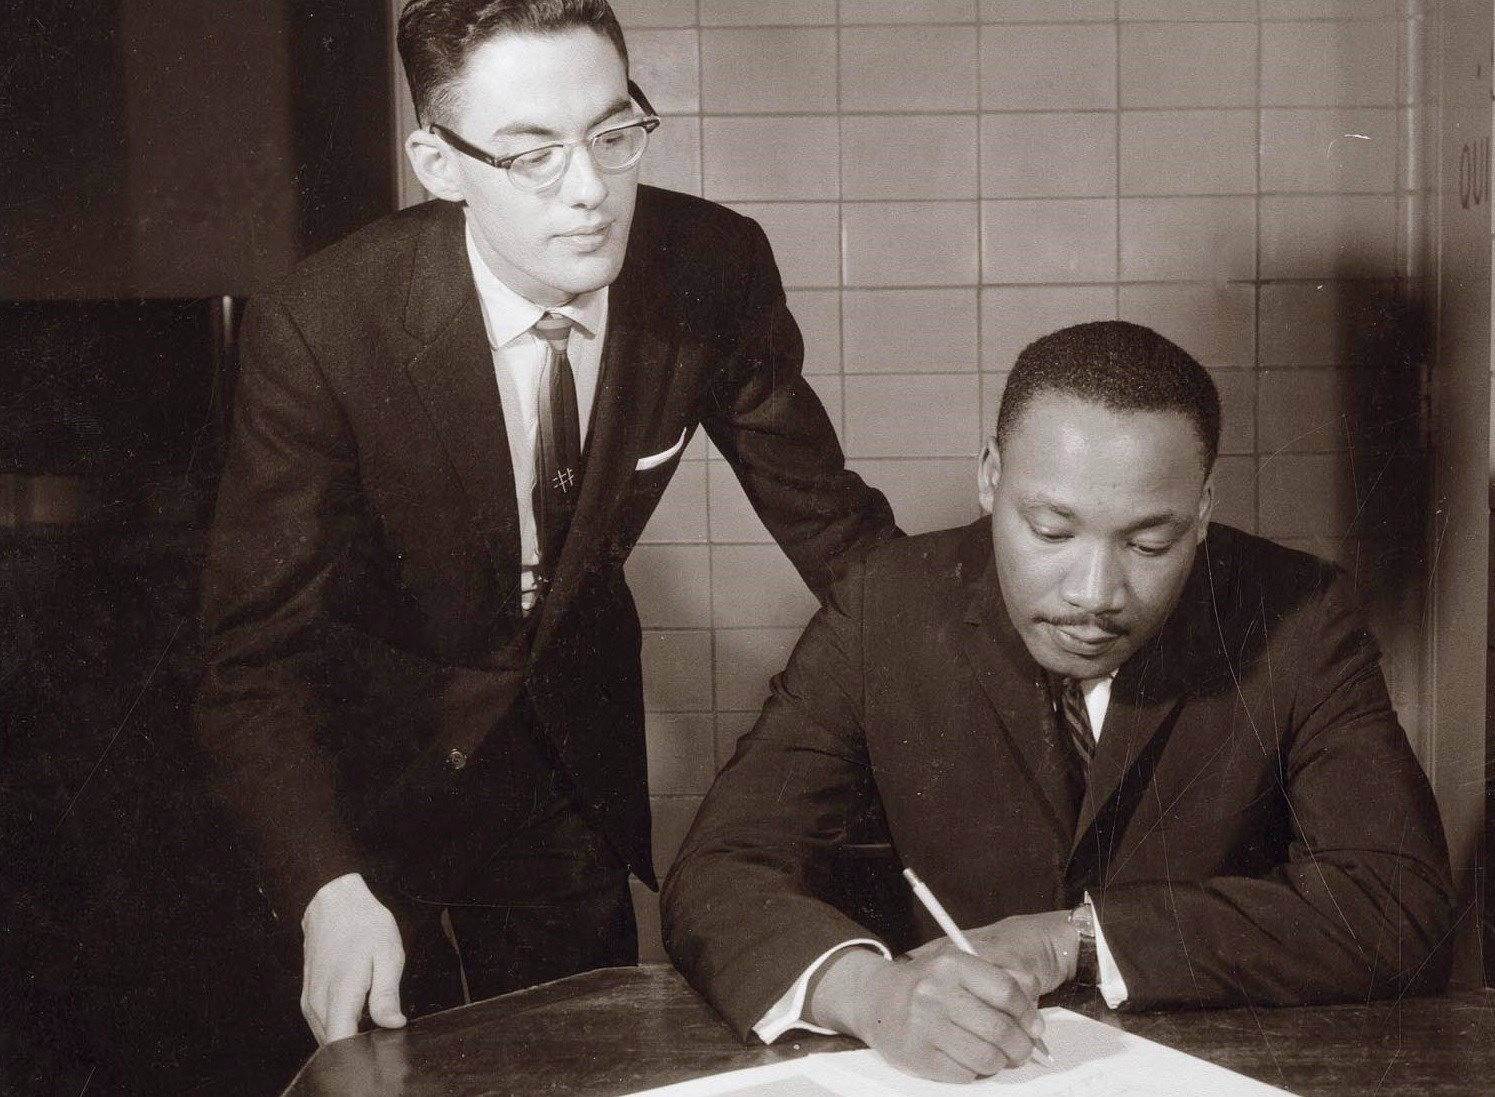 Wisconsin Union Directorate Forum Committee member Jim Ehrman with Martin Luther King, Jr. after King's lecture at the University of Wisconsin–Madison on March 30, 1962. Wisconsin Union photo